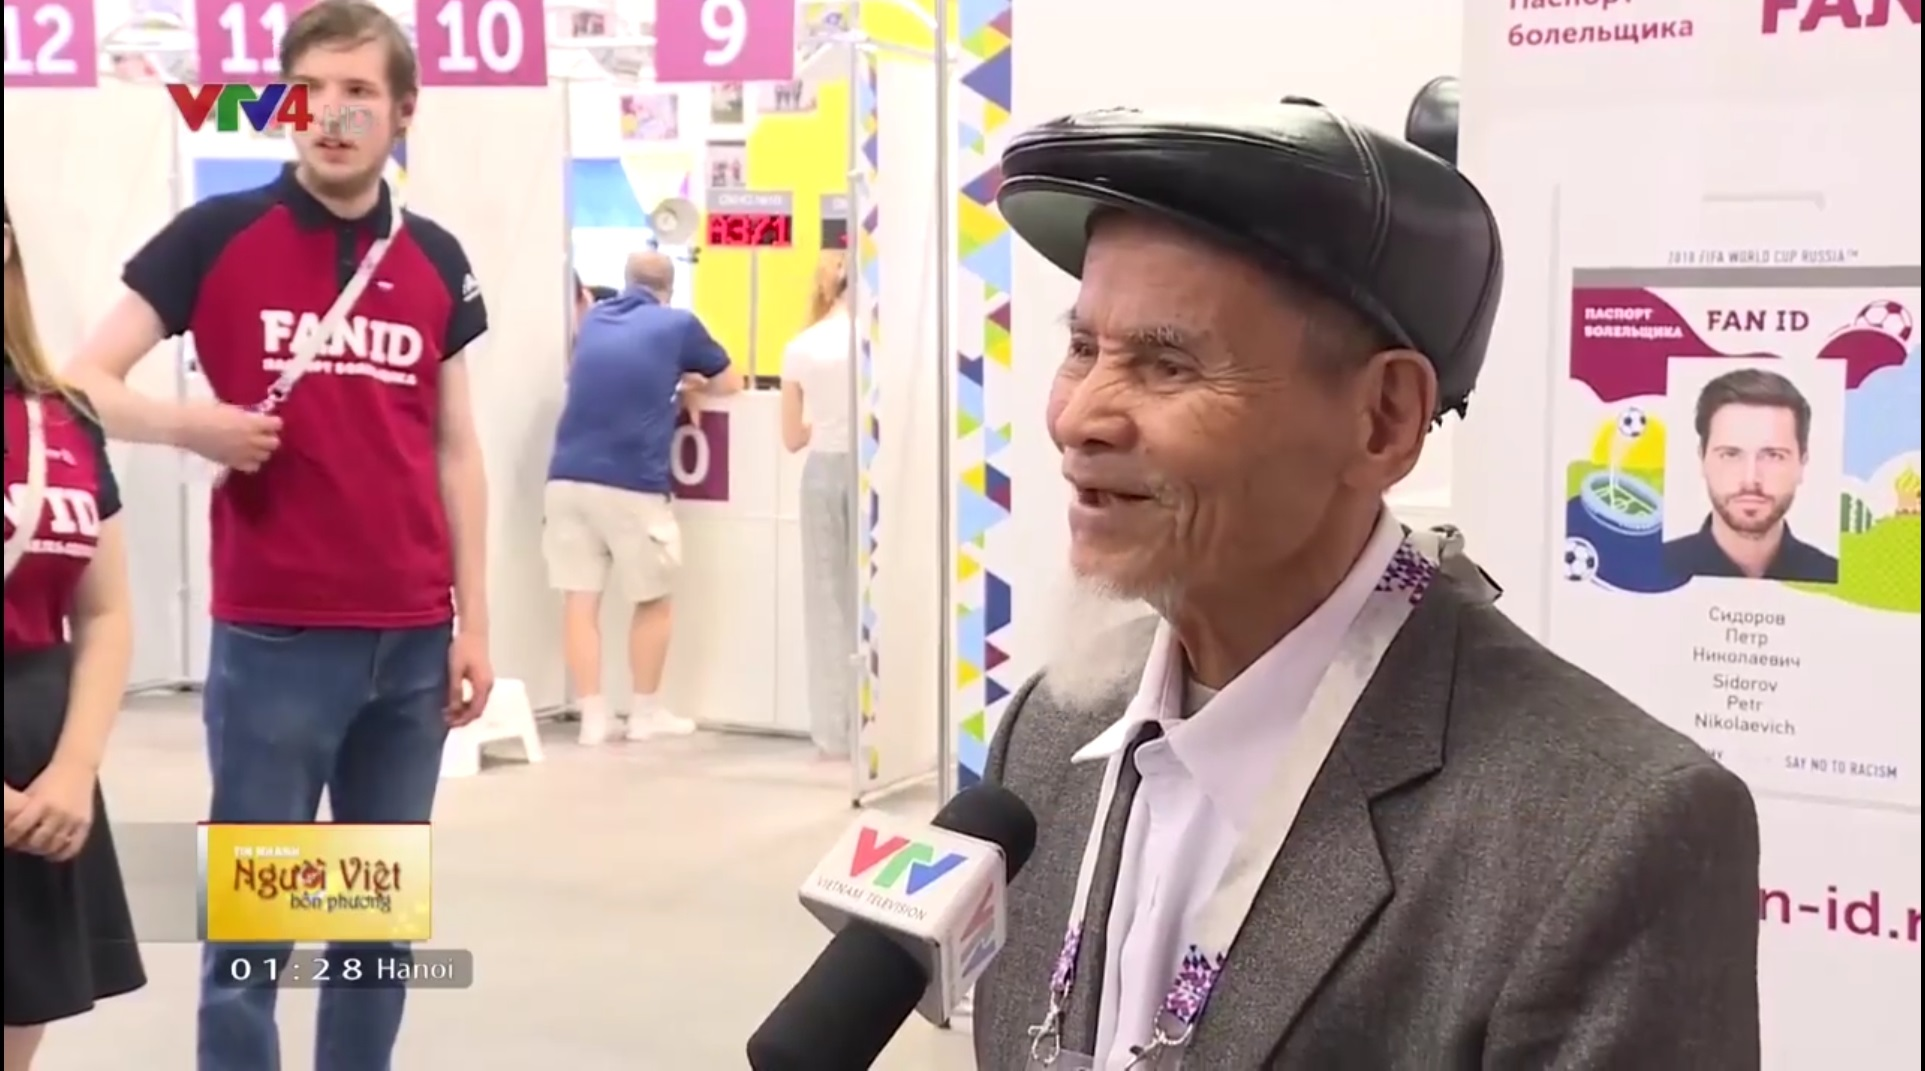 ​95-year-old Vietnamese man oldest fan at 2018 World Cup in Russia